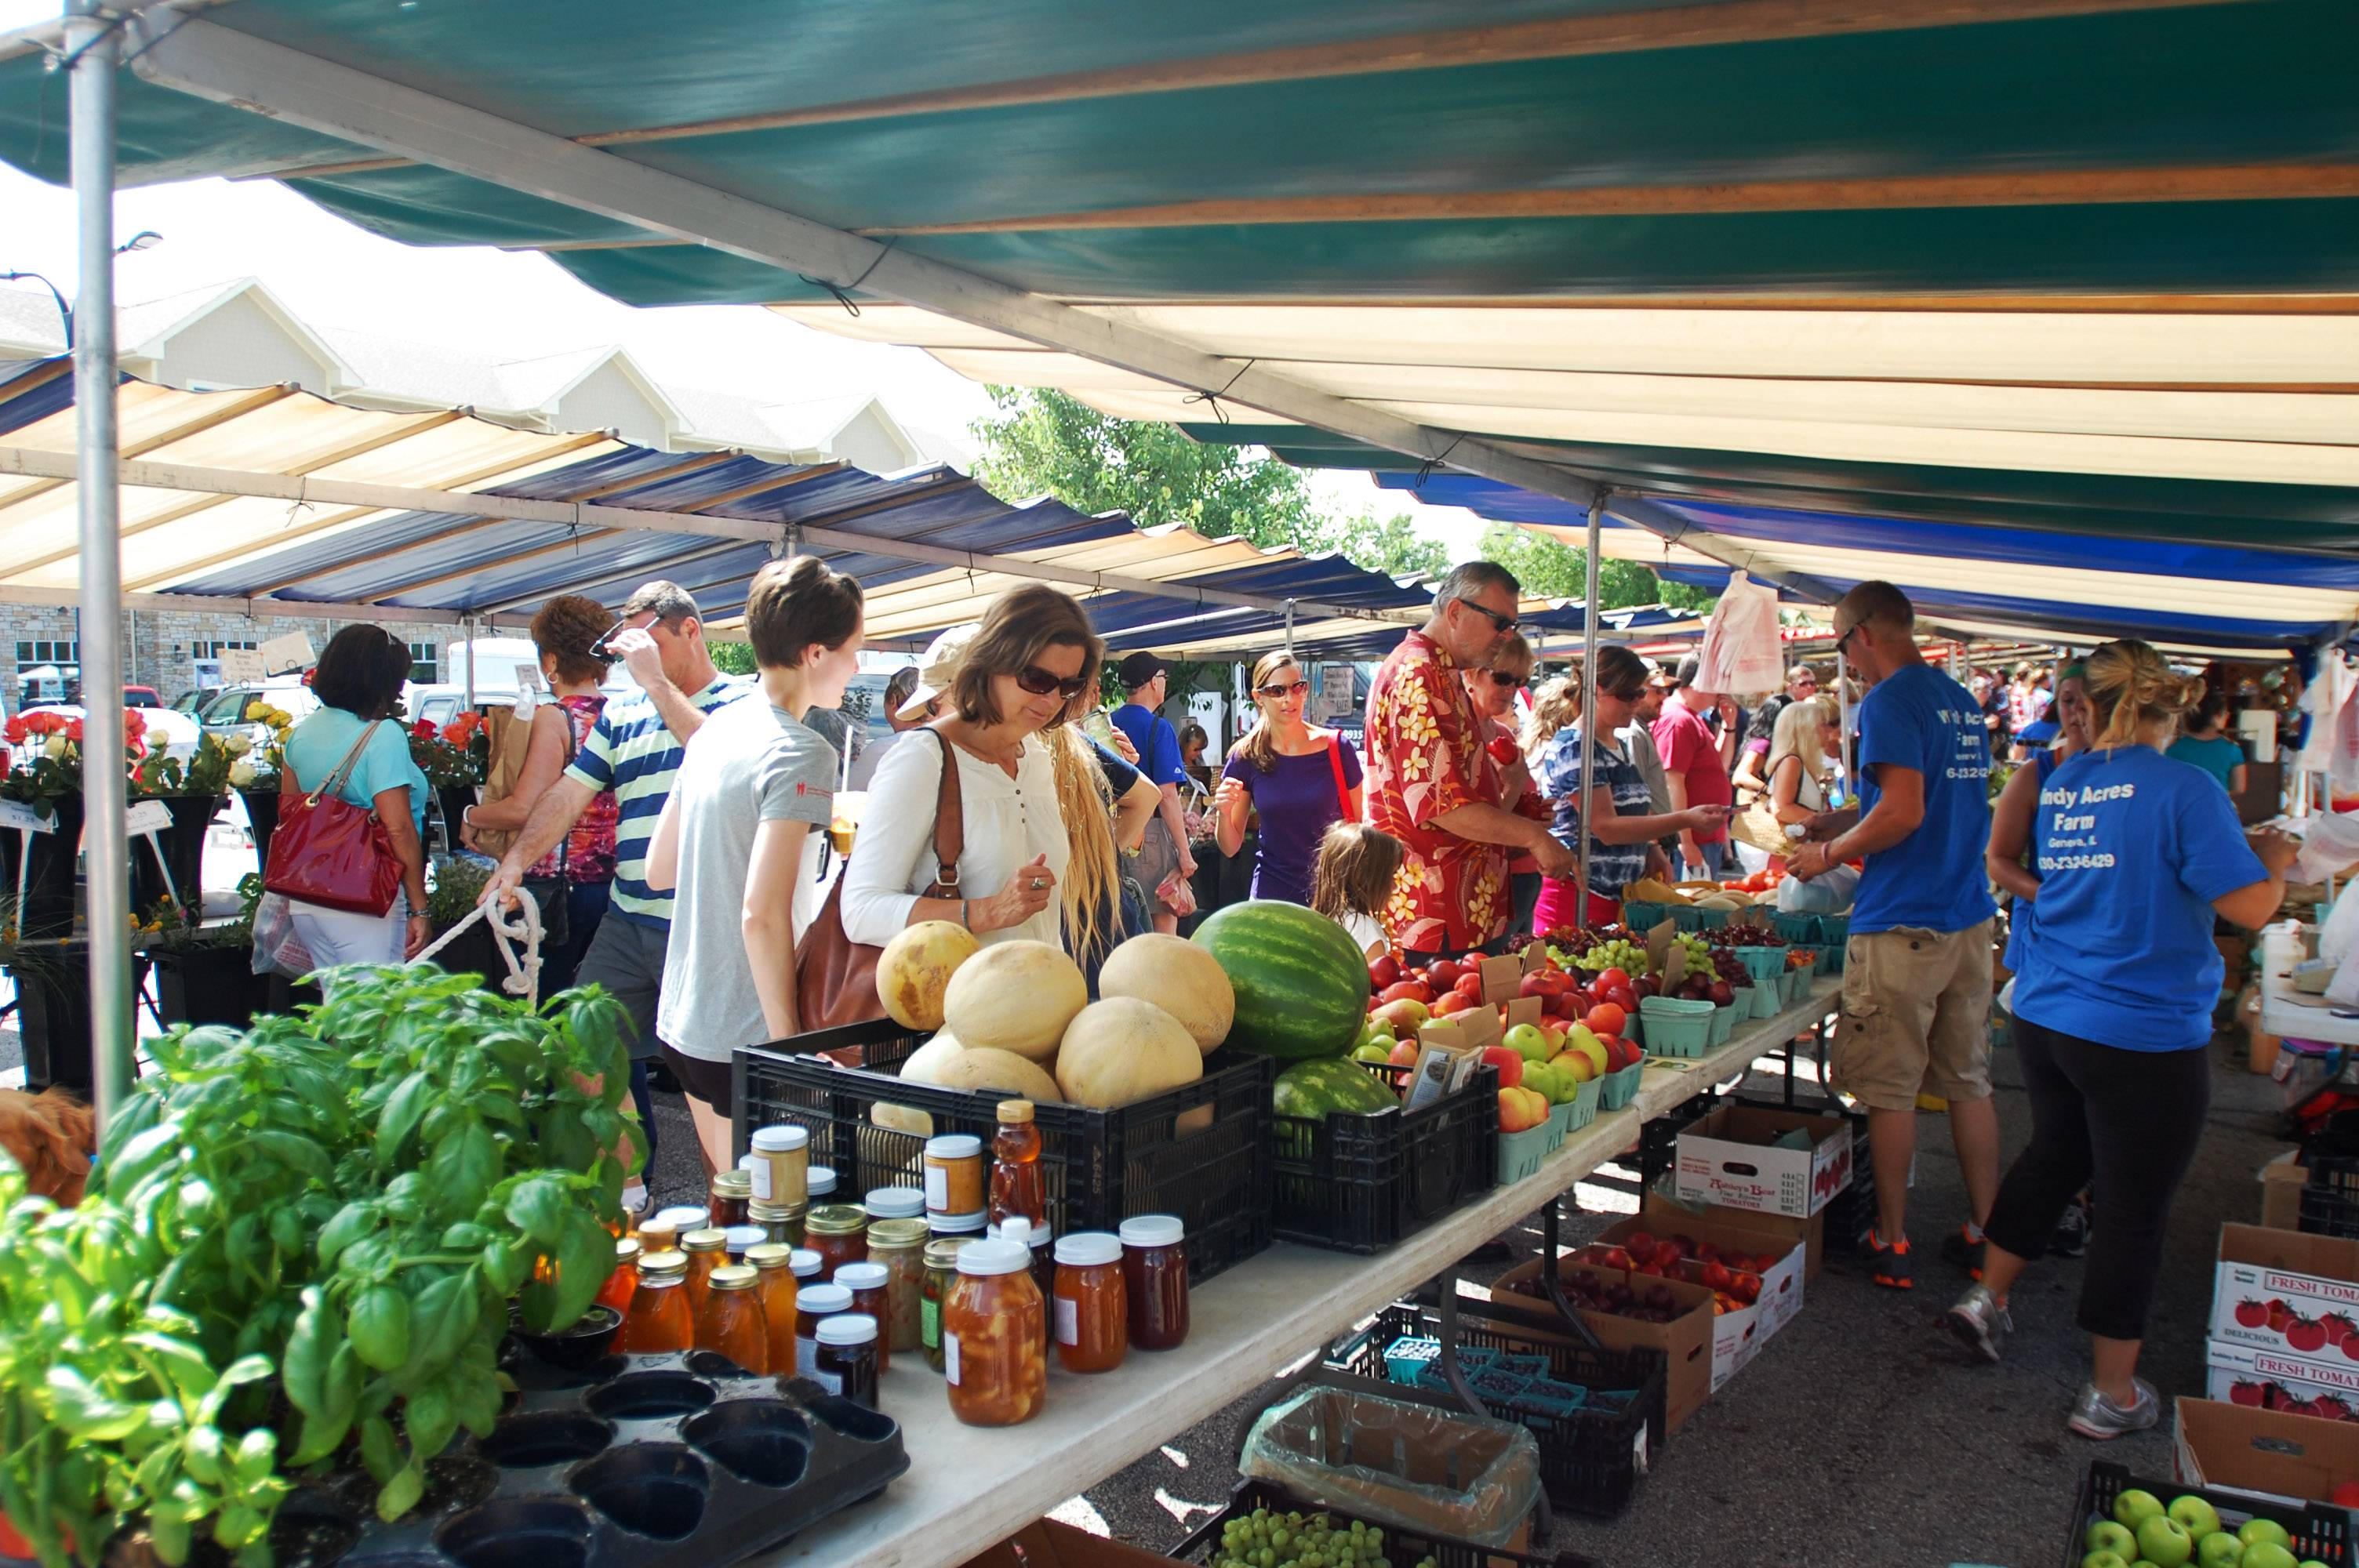 Prospect Heights leaders are in talks to bring a weekly French Market, like the one here in Geneva, to the city later this year. Officials said the market is a more eclectic version of a traditional farmers market, featuring not just produce but items ranging from pottery to French linens.